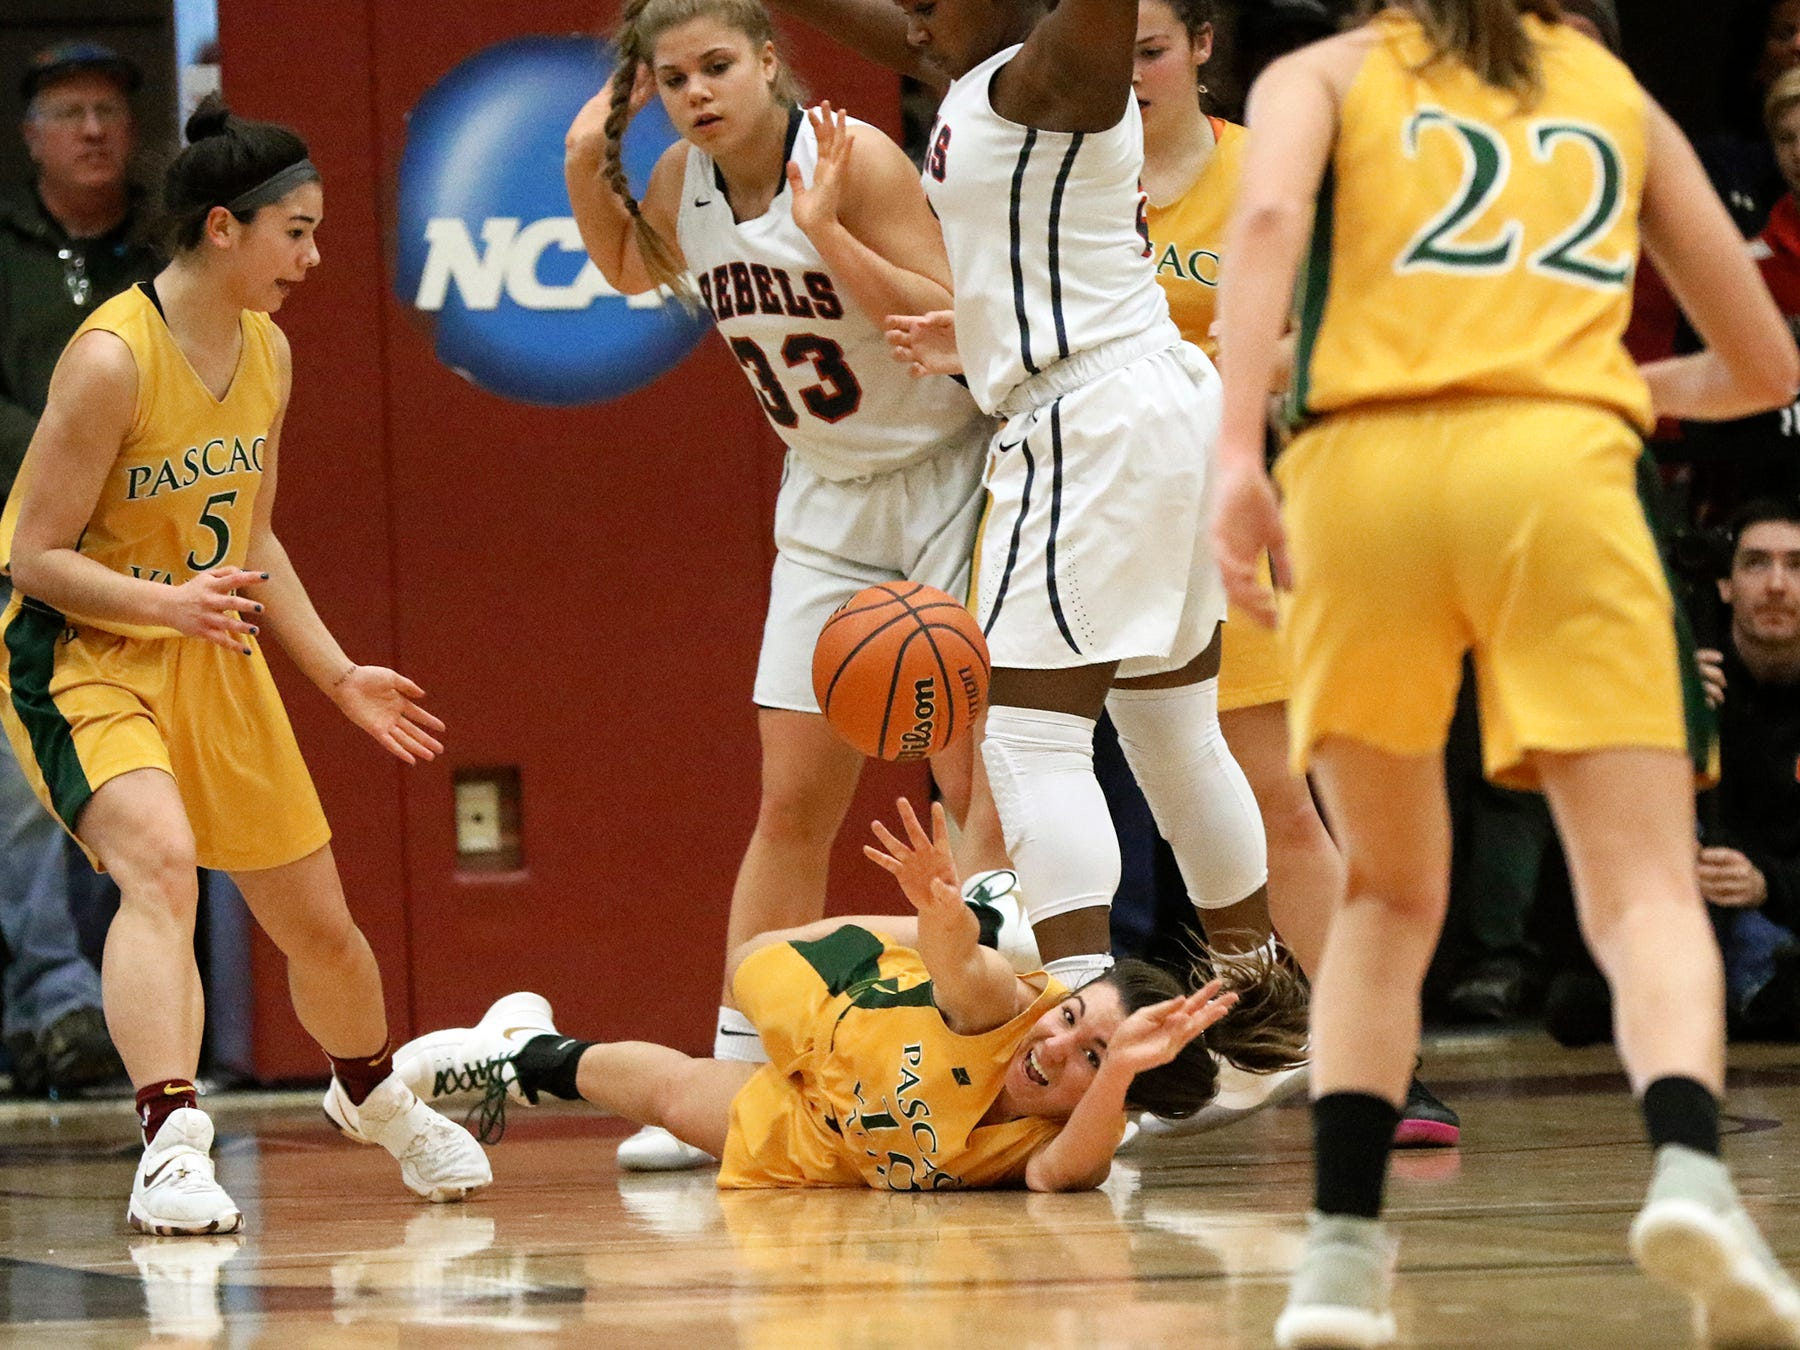 Toriana Tabasco of Pascack Valley, tries to keep the ball away from Saddle River Day School.  Valley came up short as the Rebels won, 60-55, for the Bergen County Women Coaches Association Championship, in Mahwah, Sunday February 18, 2018.